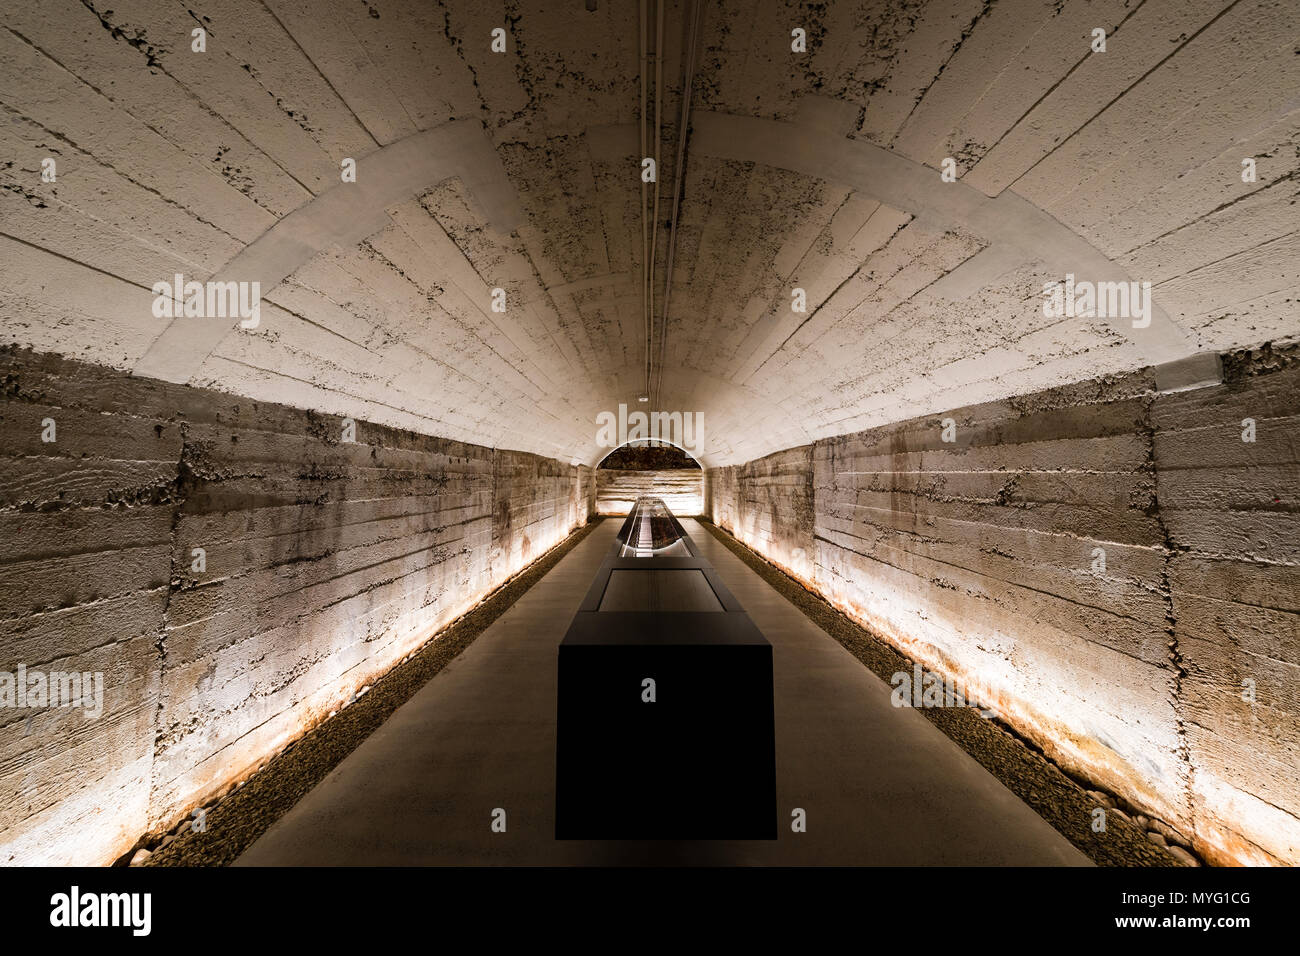 An underground climate controlled tunnel storing a rare collection of red wine. - Stock Image